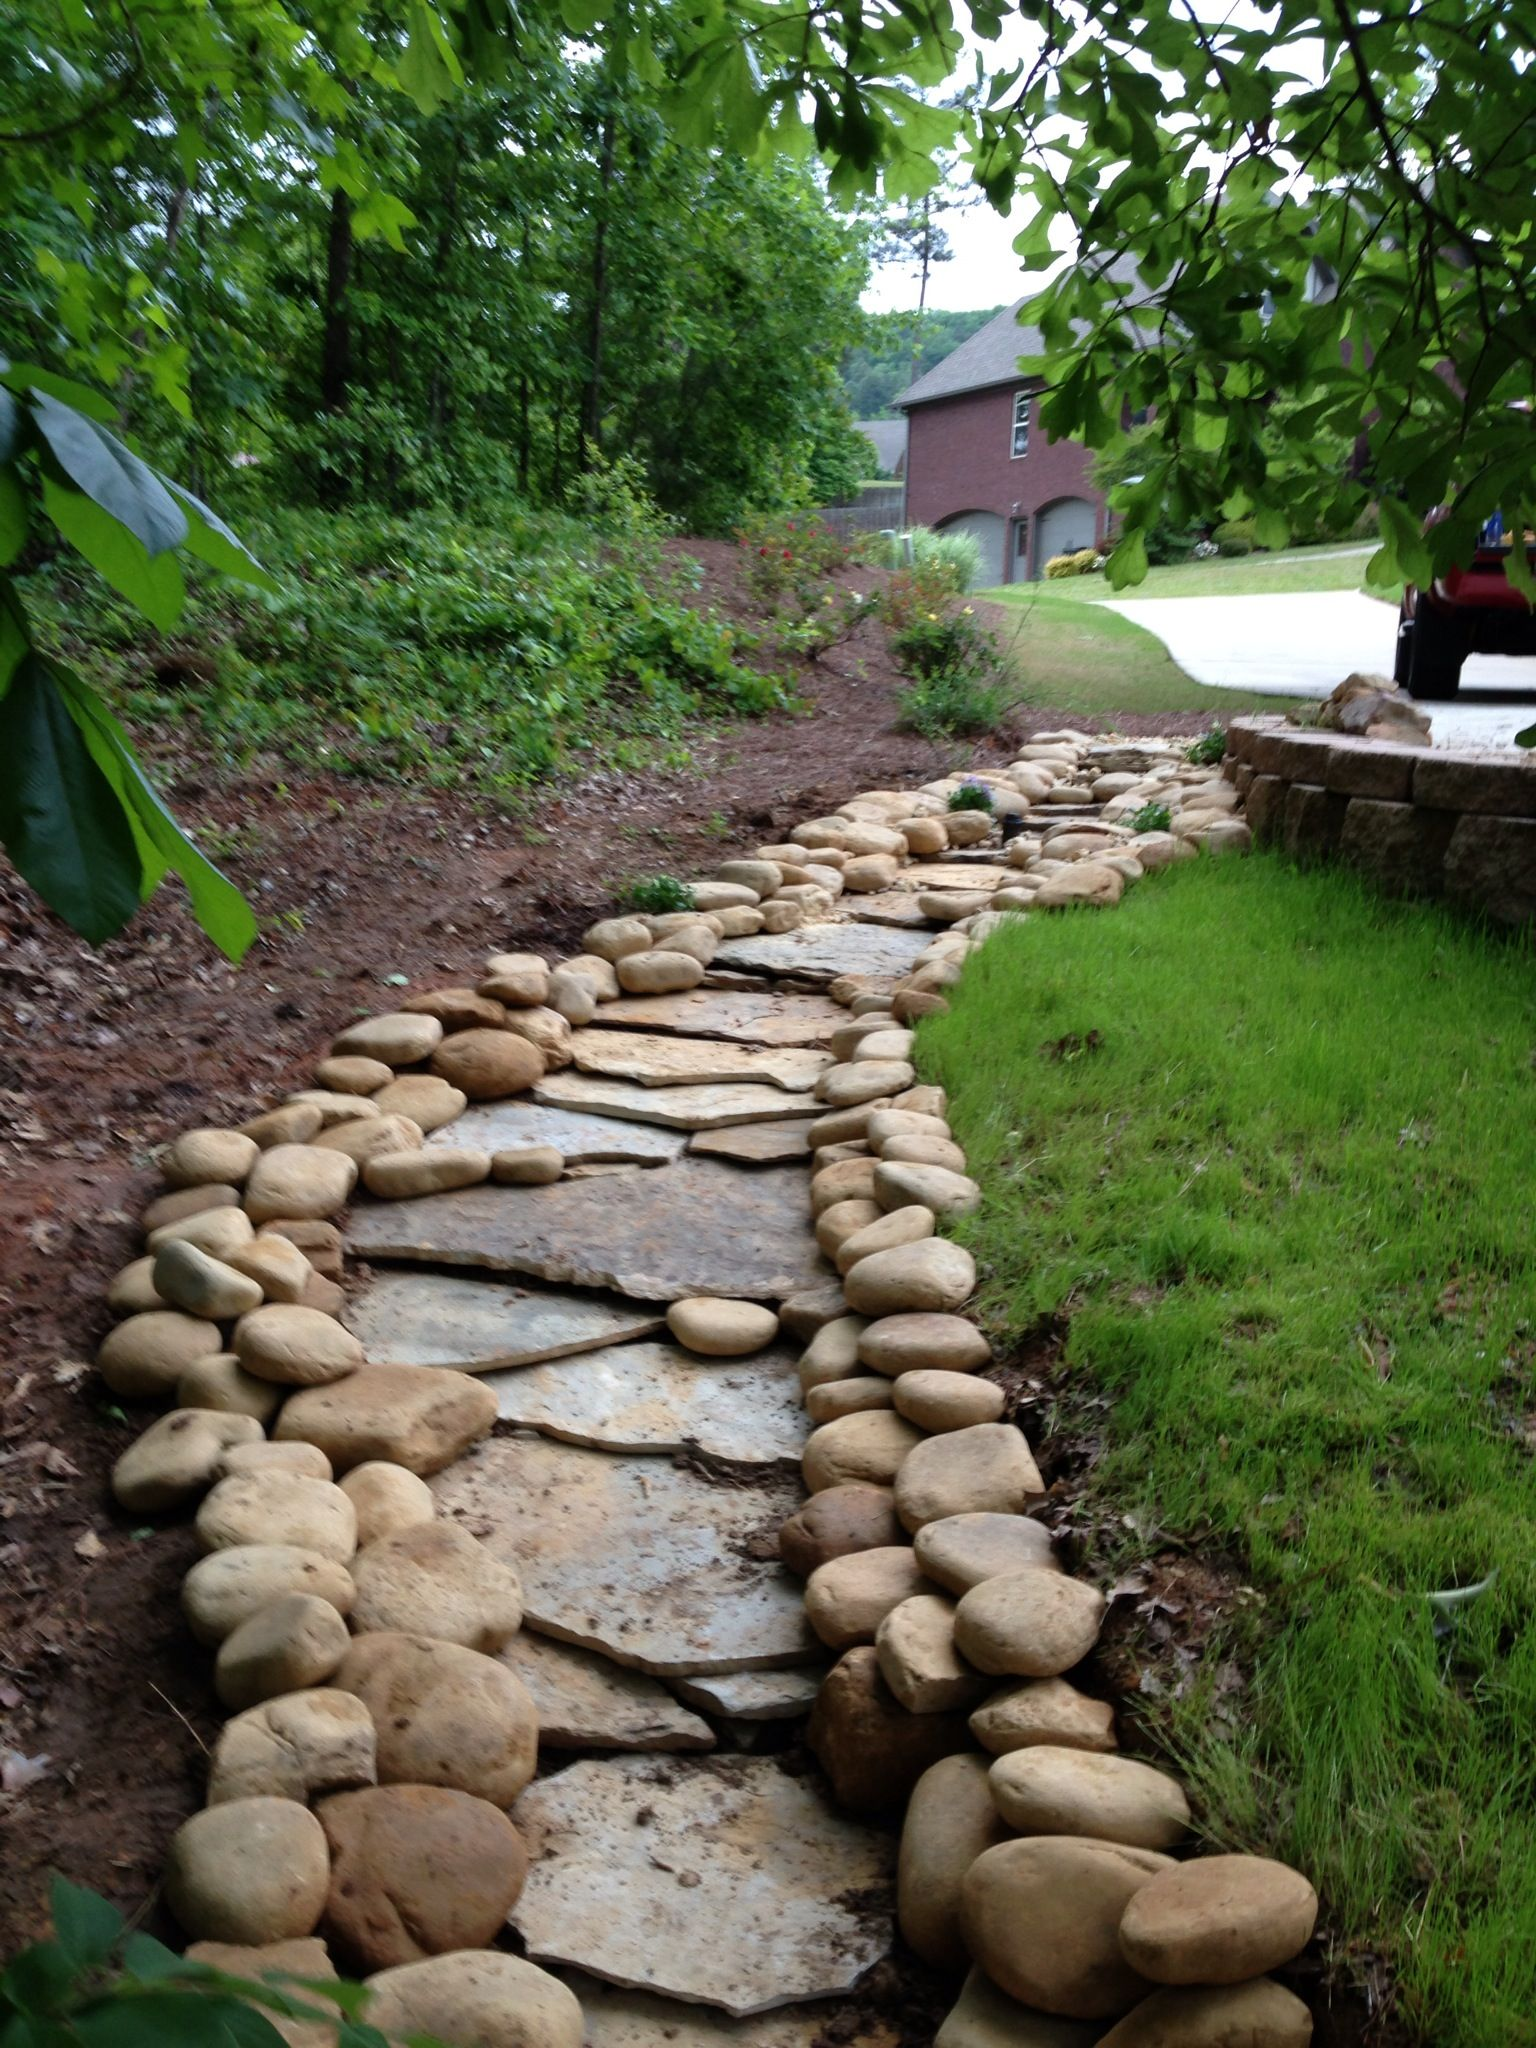 The Flat Stone Fragments In The Creek Bed Might Make This A Good